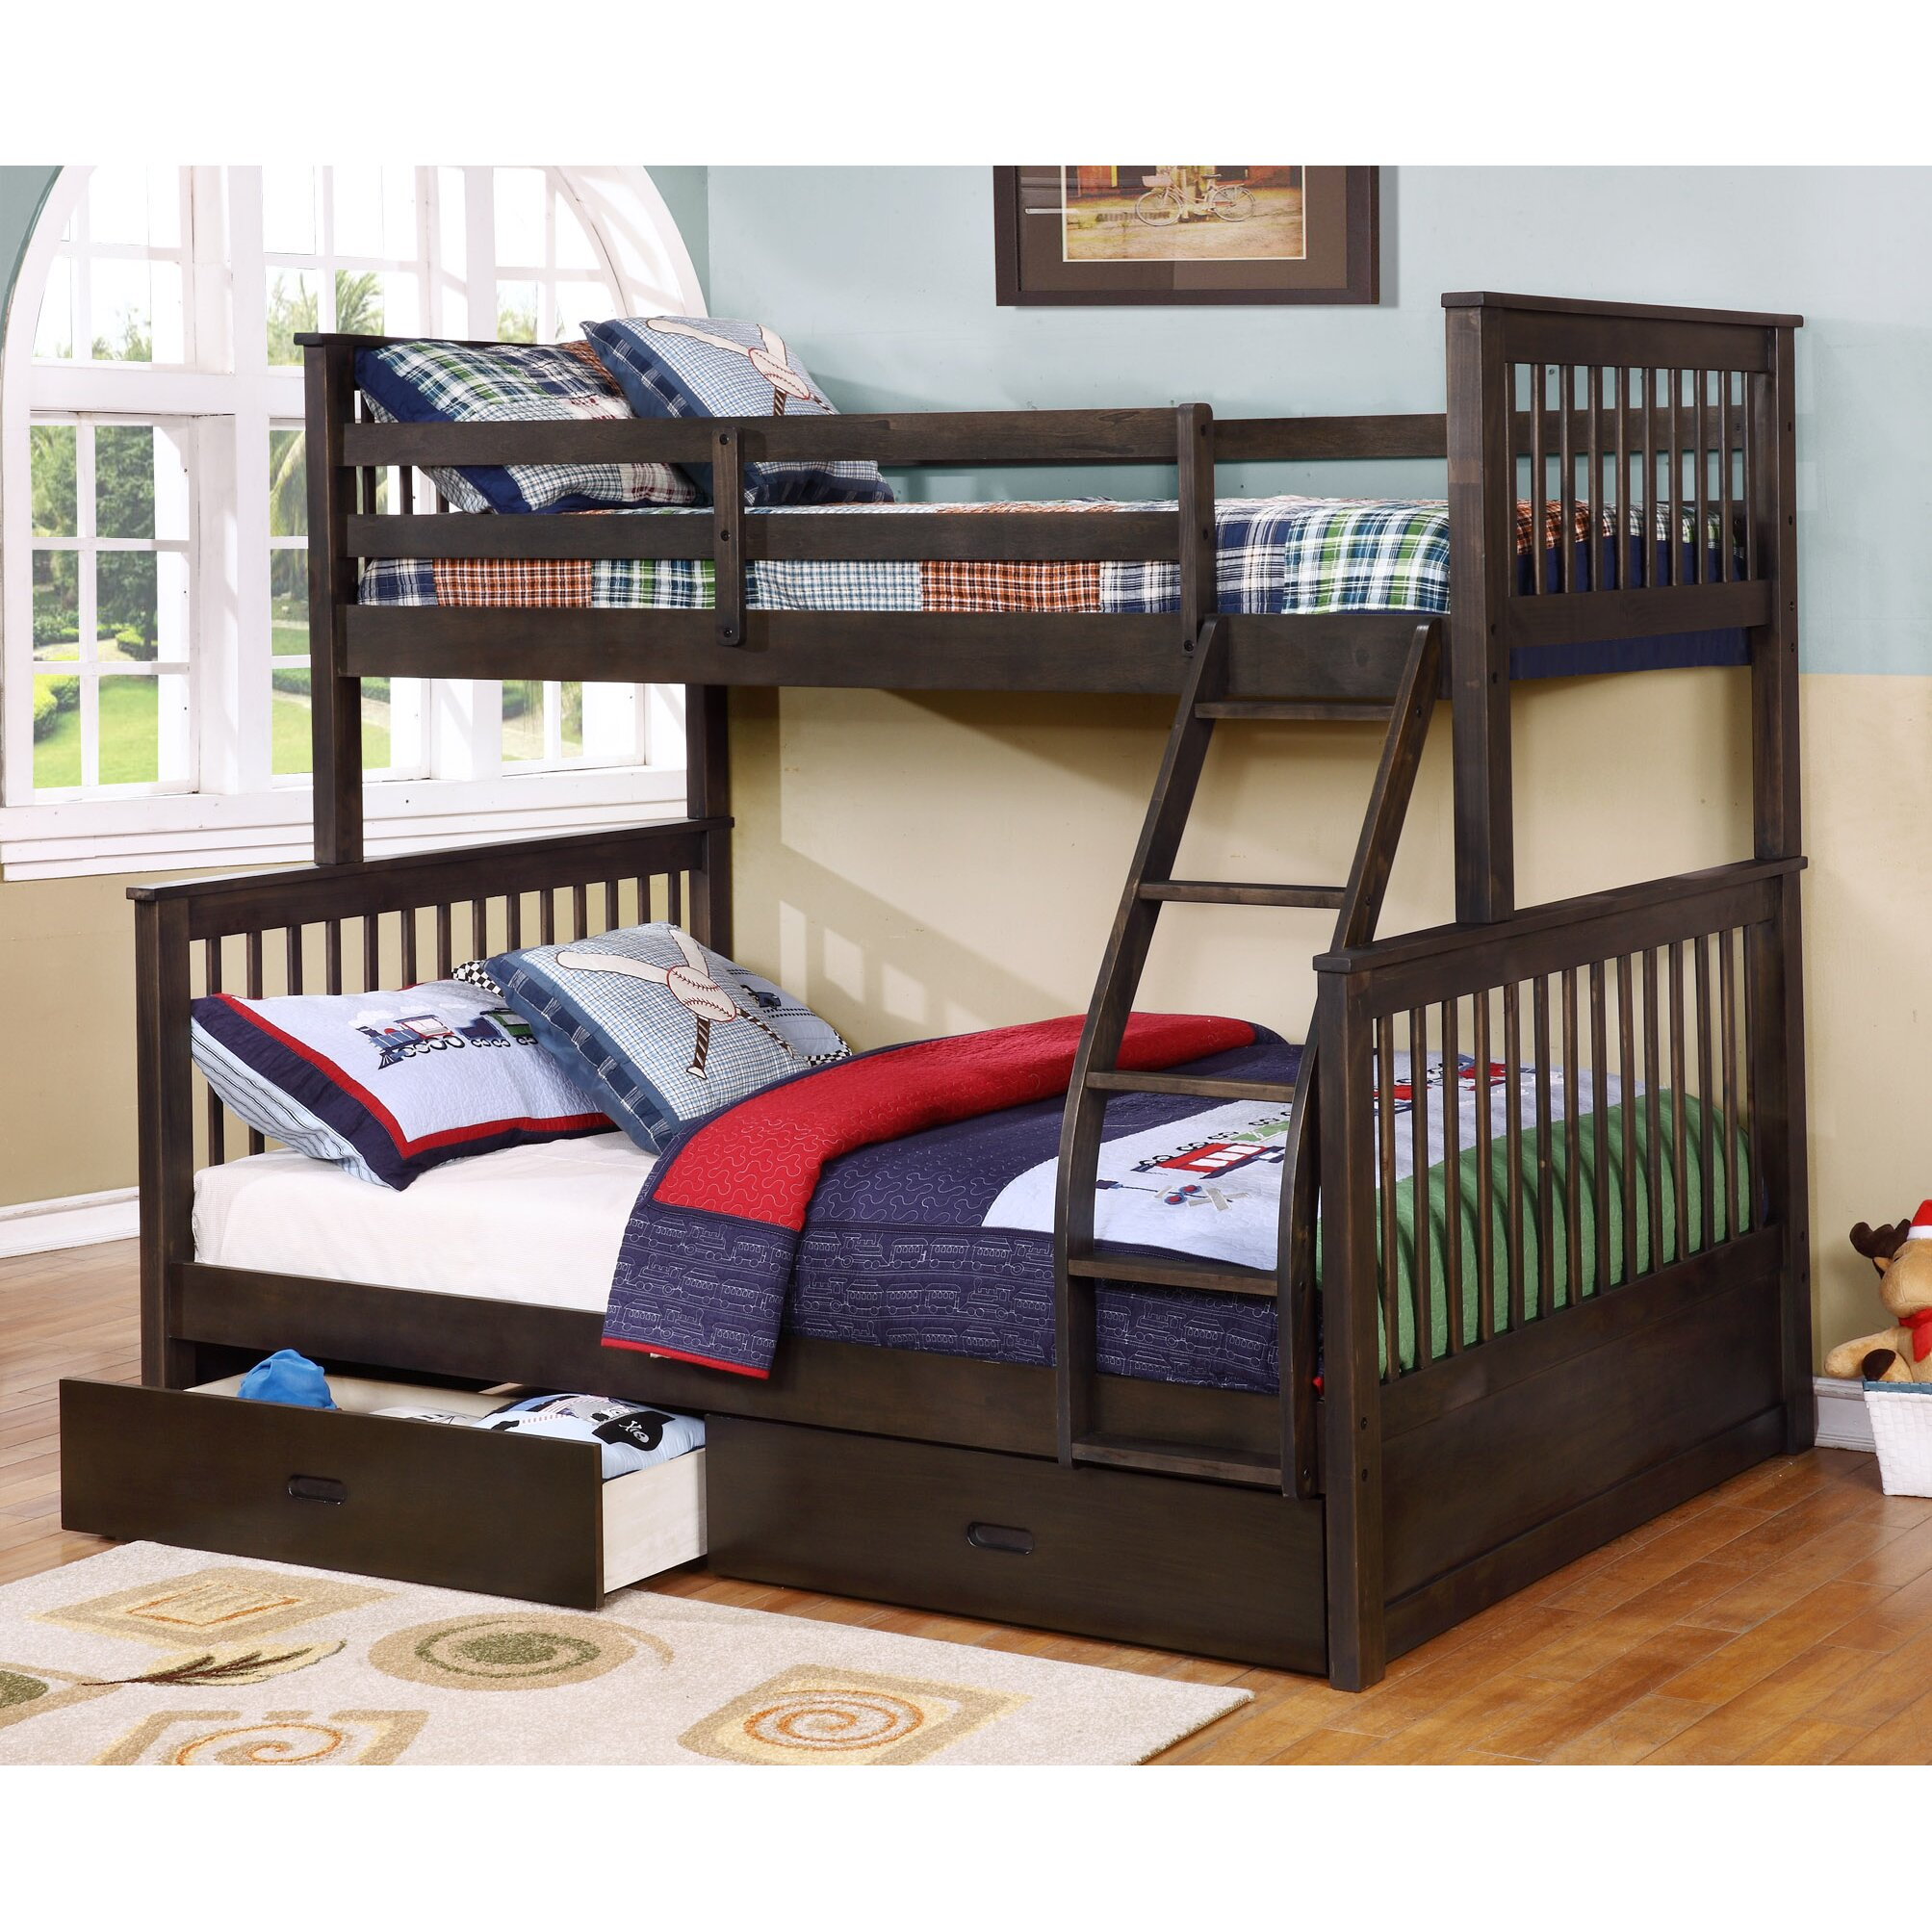 Wildon Home R Paloma Mission Twin Over Full Bunk Bed With